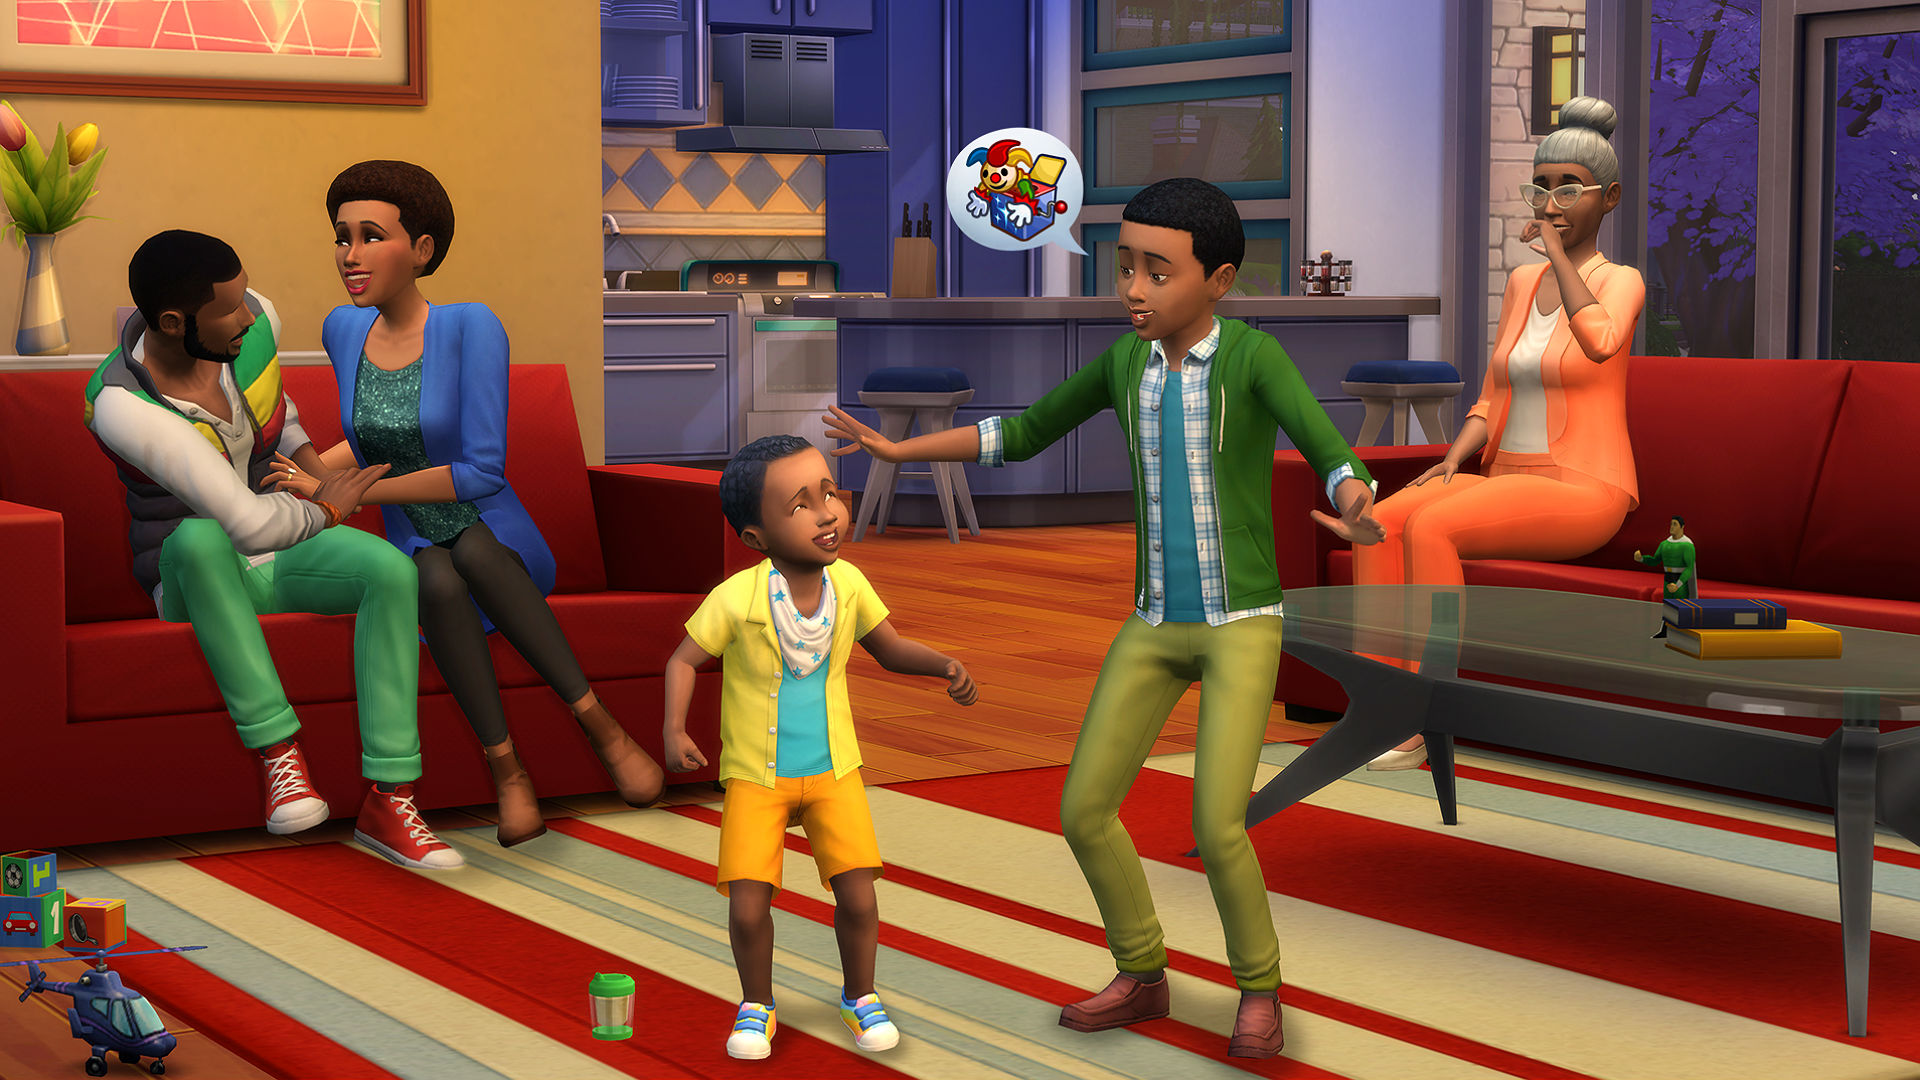 Sims 4 cheats: how to use cheats and get more money | PCGamesN